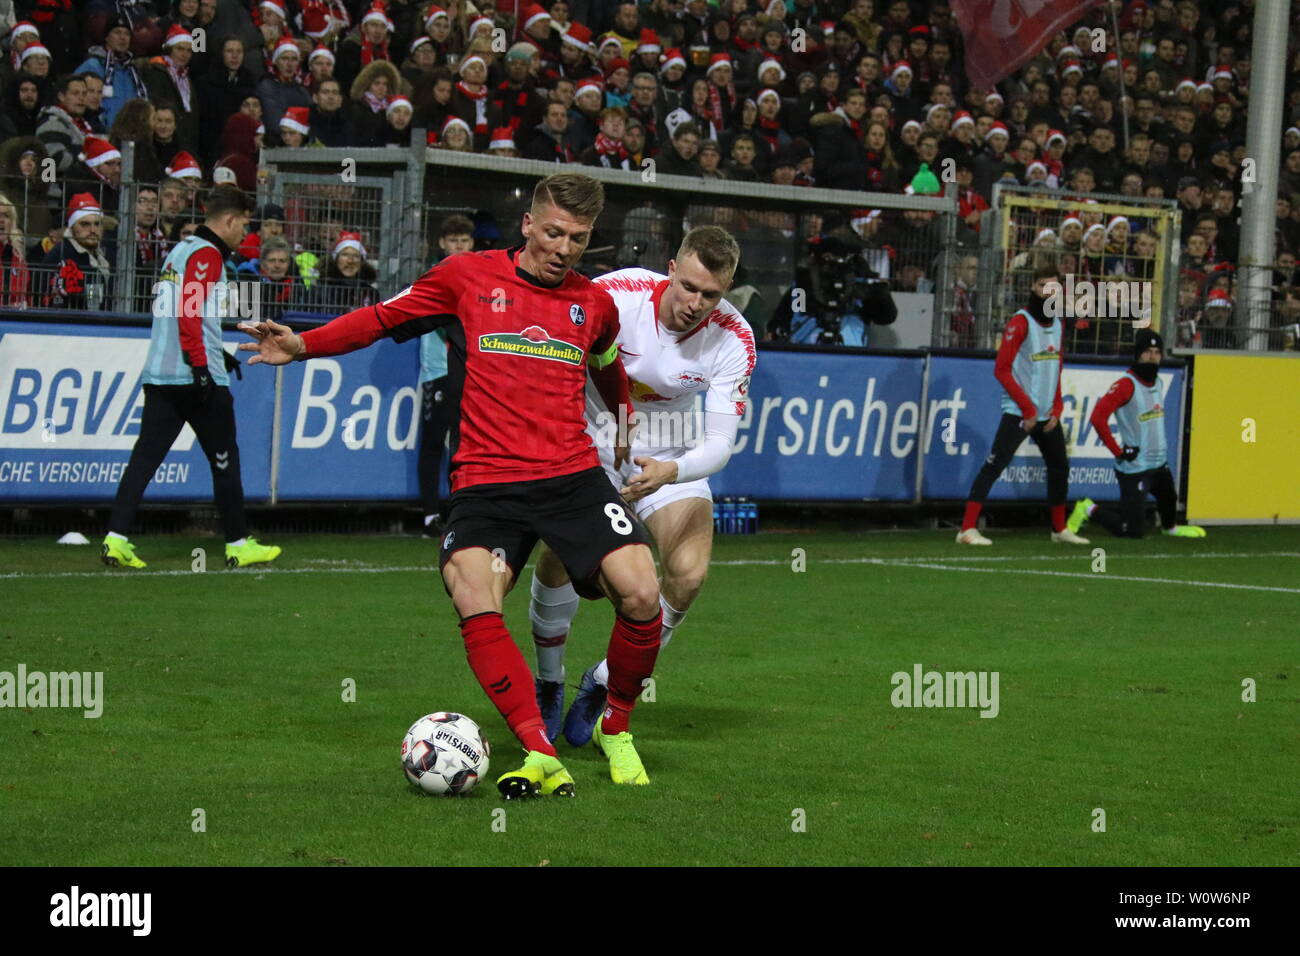 Lukas Klostermann High Resolution Stock Photography and Images - Alamy